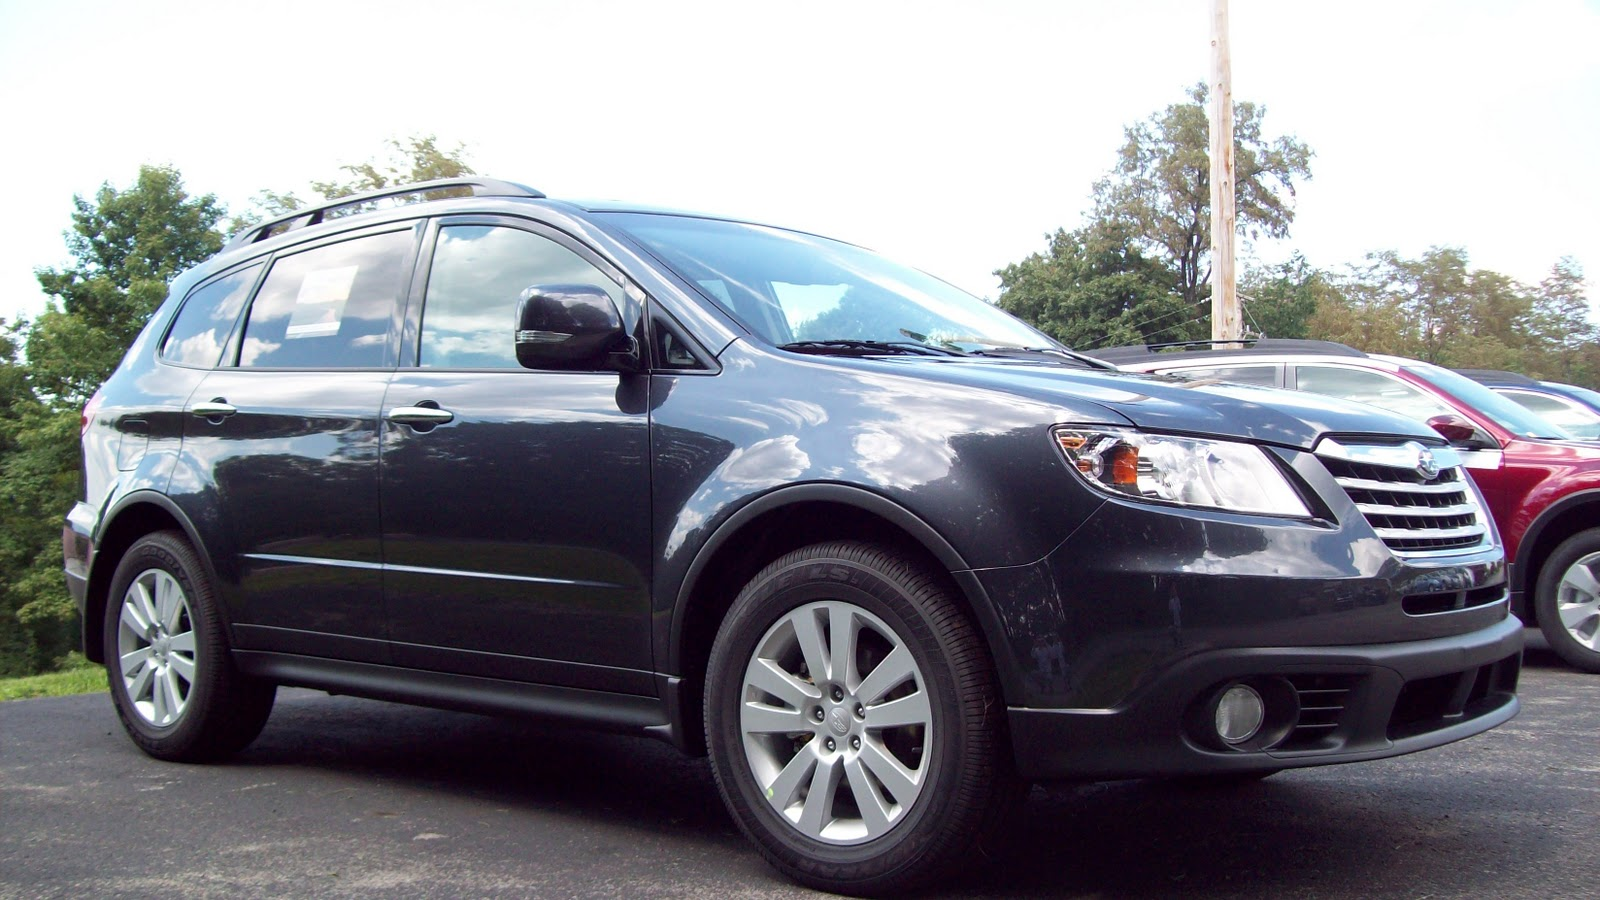 Kendall self drive  2011 Subaru Tribeca Review